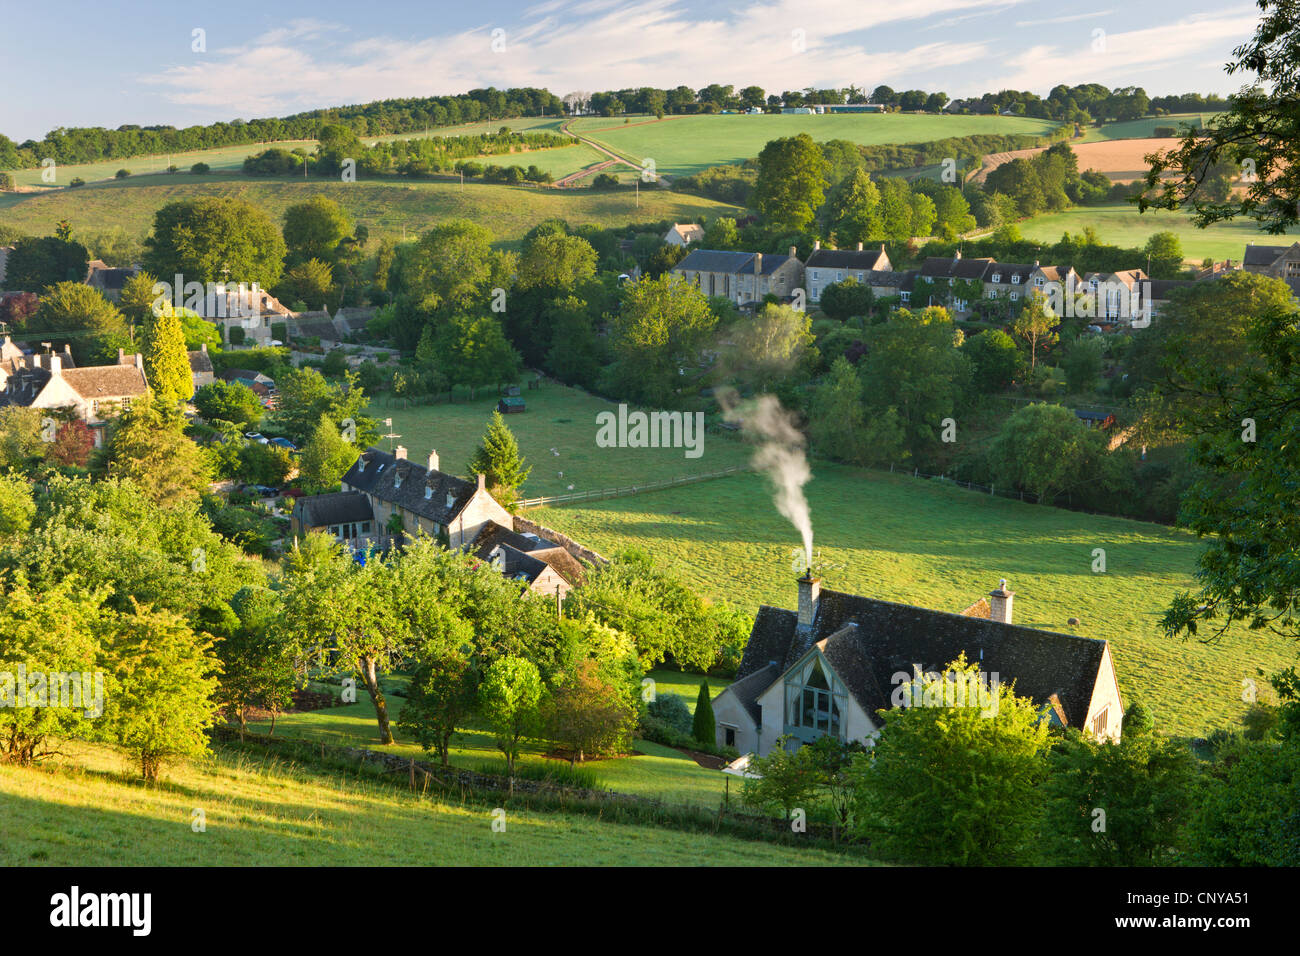 Cottages nestled into the valley in the picturesque Cotswolds village of Naunton, Gloucestershire, England. Summer - Stock Image